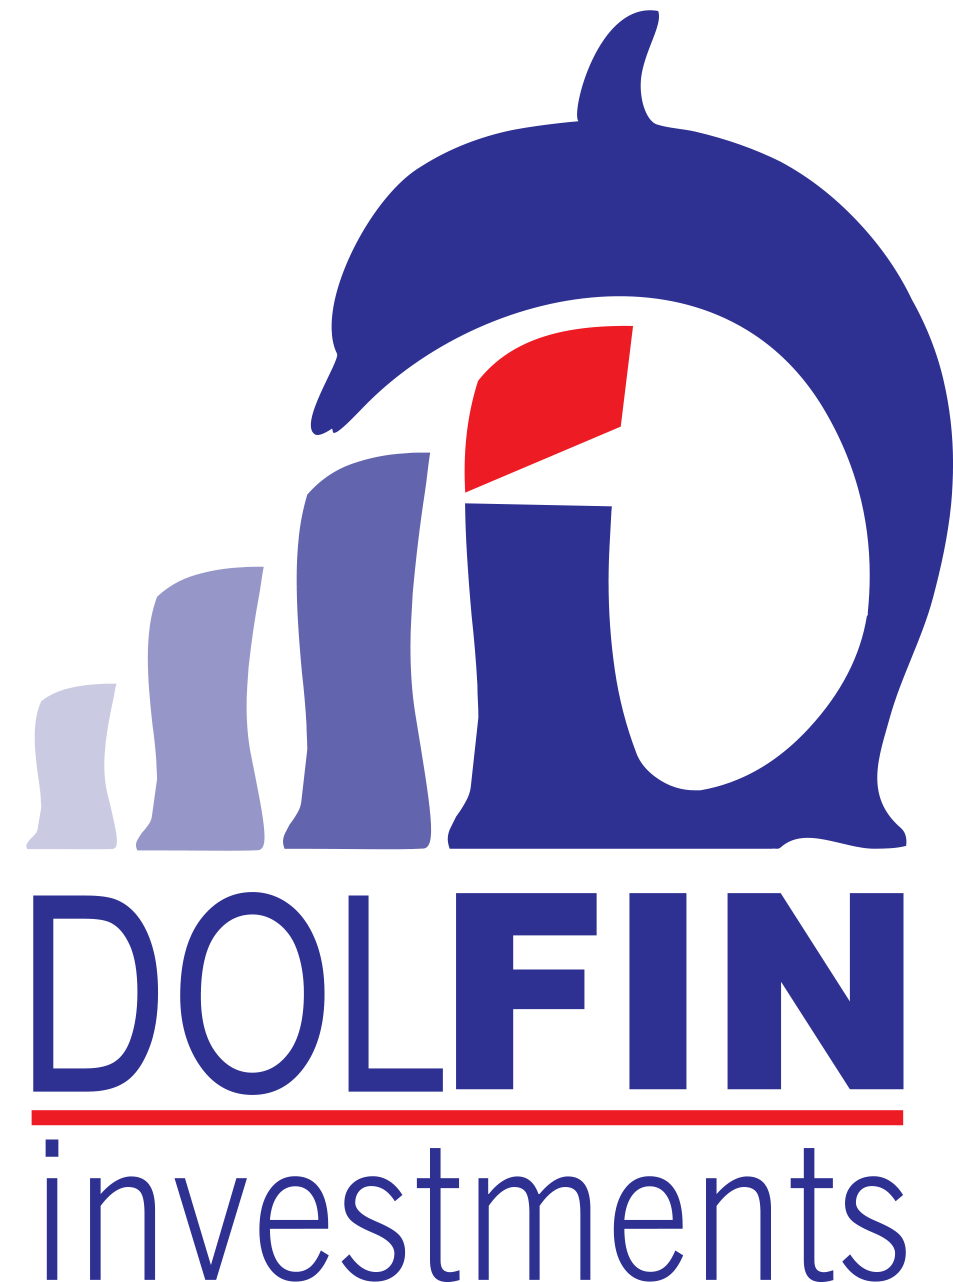 Journey towards dolfininvestment investment. Freedom clipart financial freedom